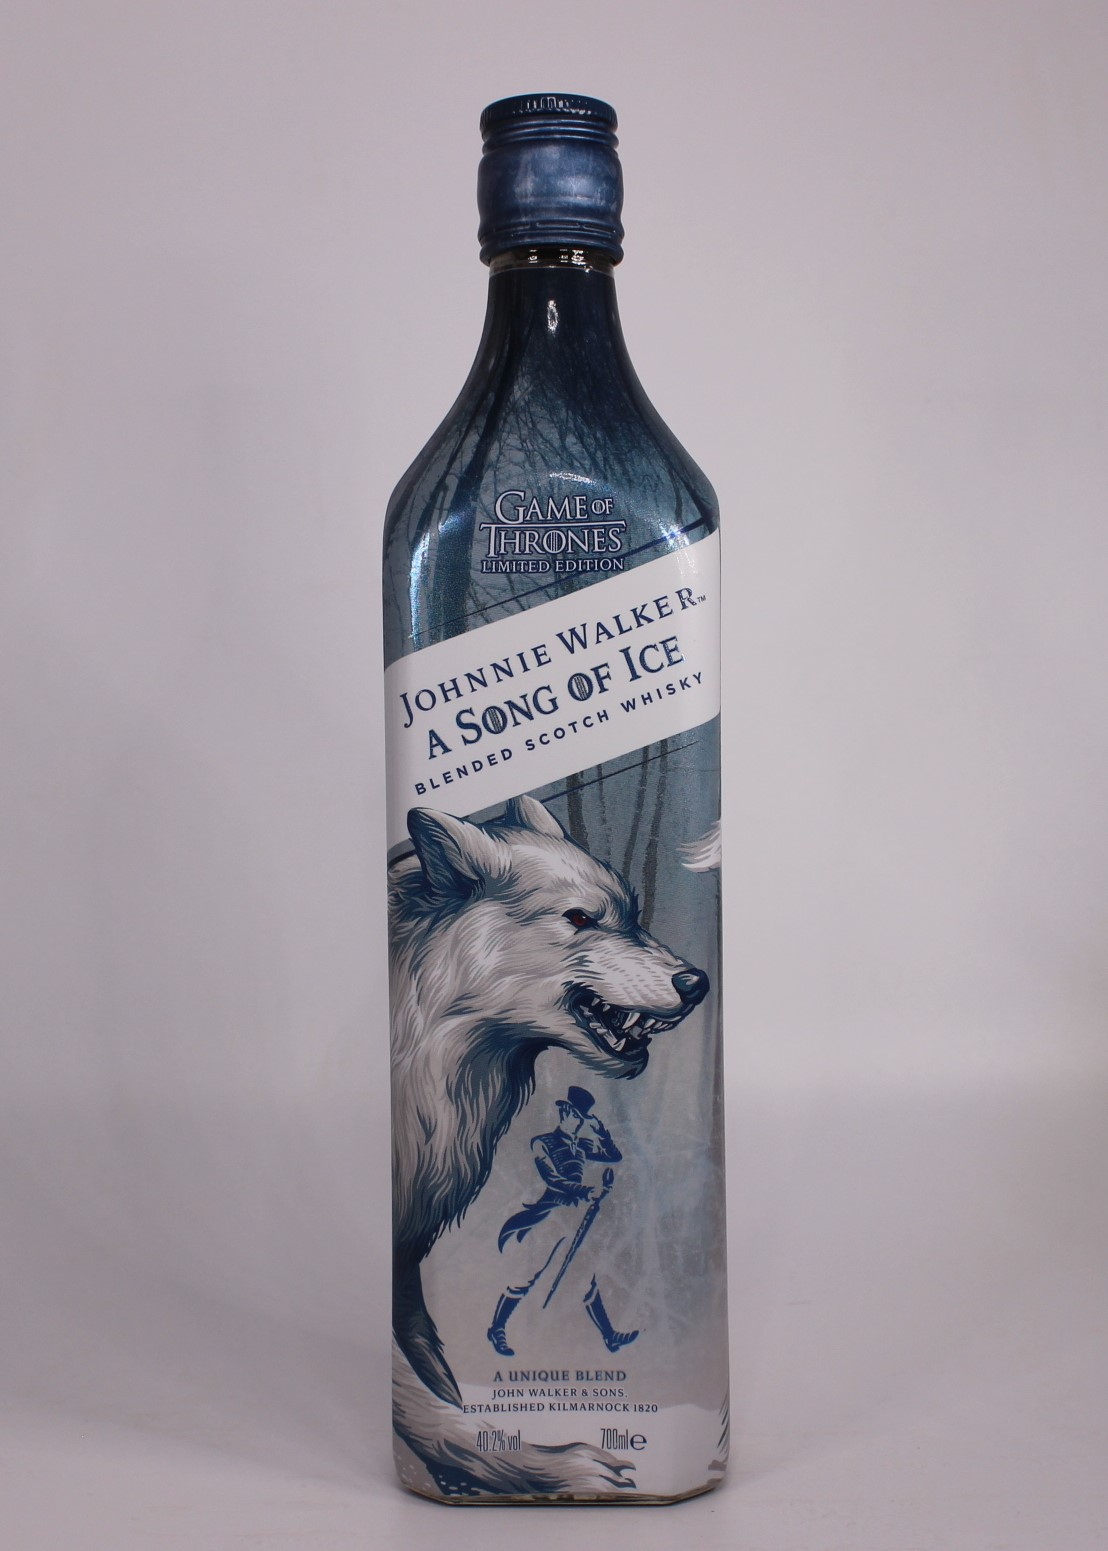 Johnnie Walker Song of Ice Limited Edition Game of Thrones